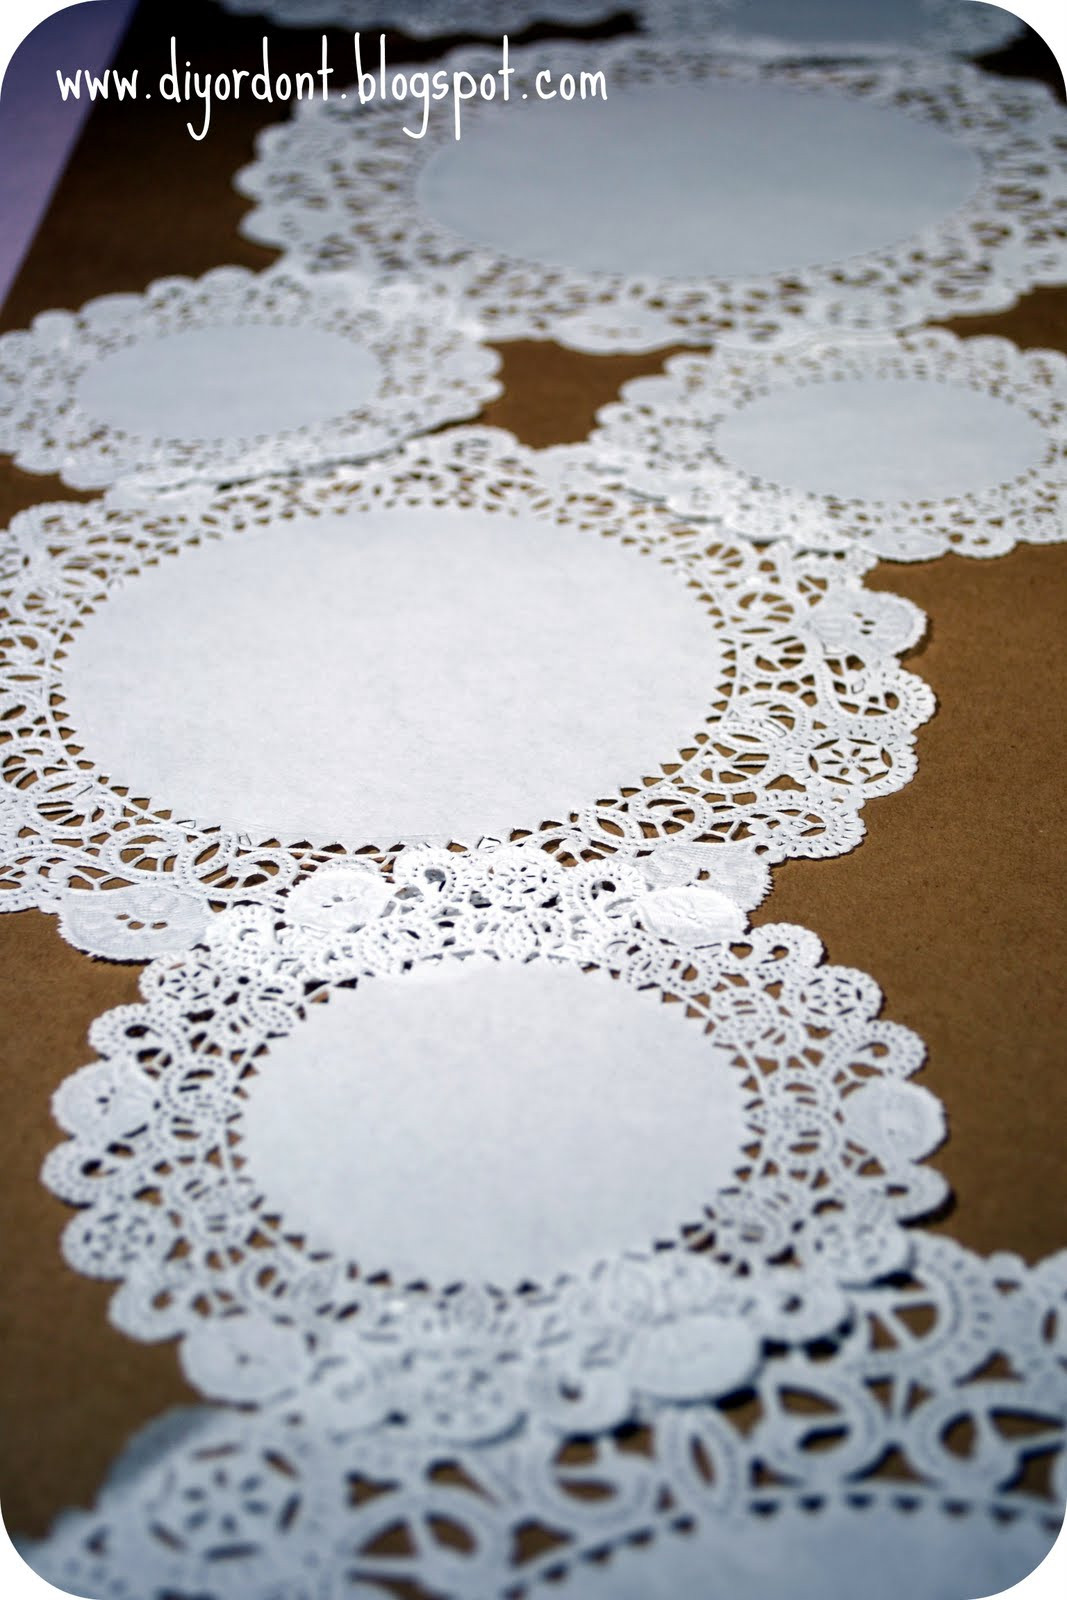 Table Doilies Lovely Diy or Don T Quickie Tutorial Doily Table Runner Of Attractive 44 Pictures Table Doilies